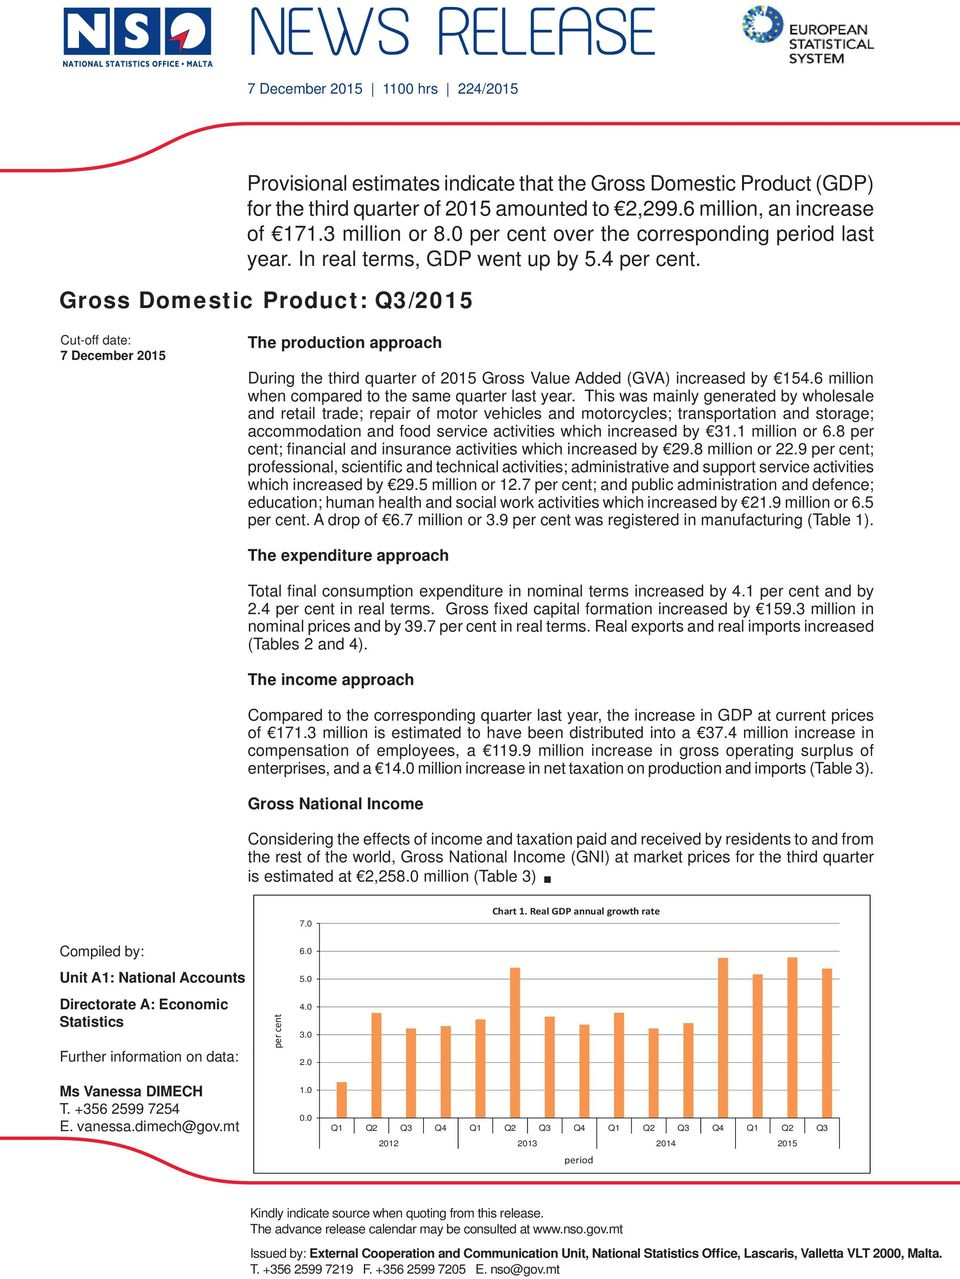 Gross Domestic Product: Q3/ Cut-off date: 7 December The production approach During the third quarter of Gross Value Added (GVA) increased by 154.6 million when compared to the same quarter last year.